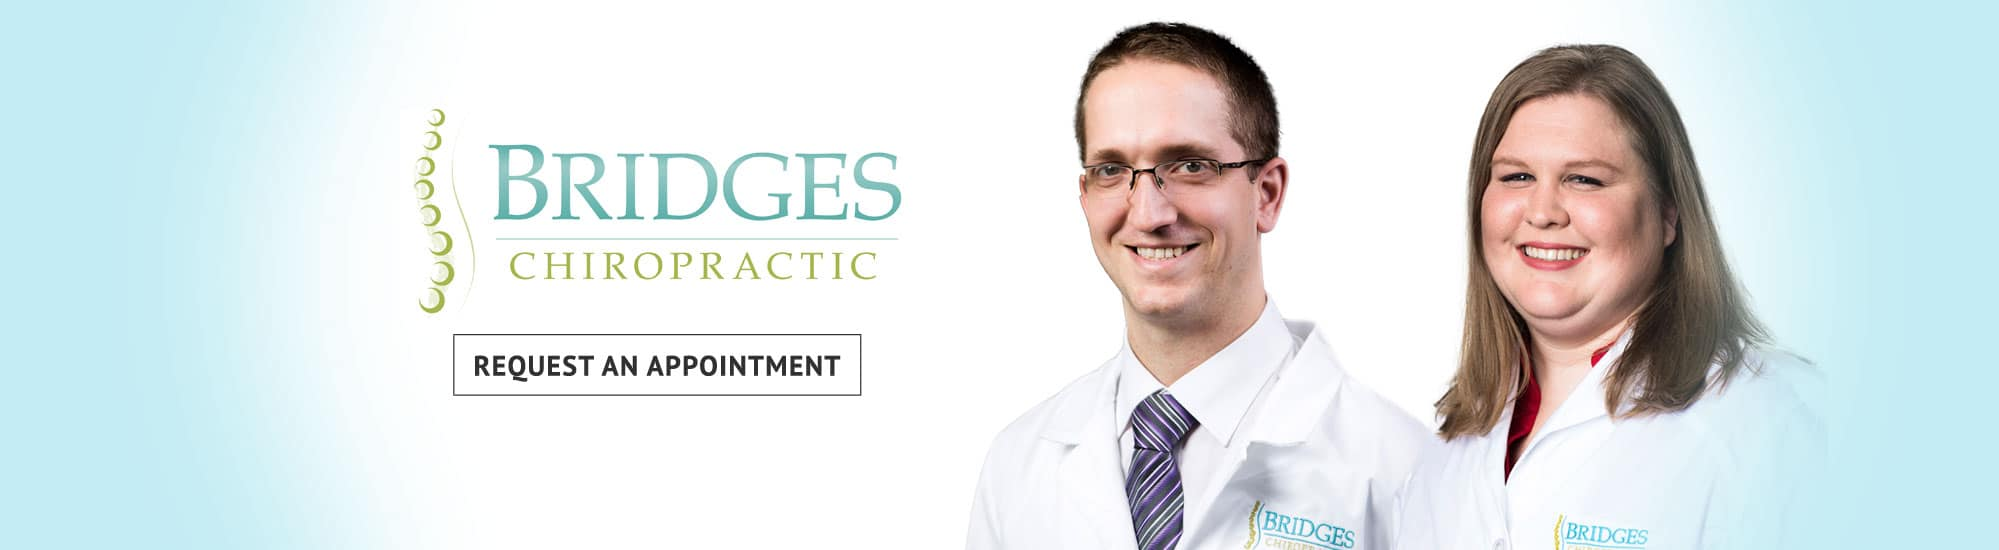 Chiropractor Sioux Falls SD